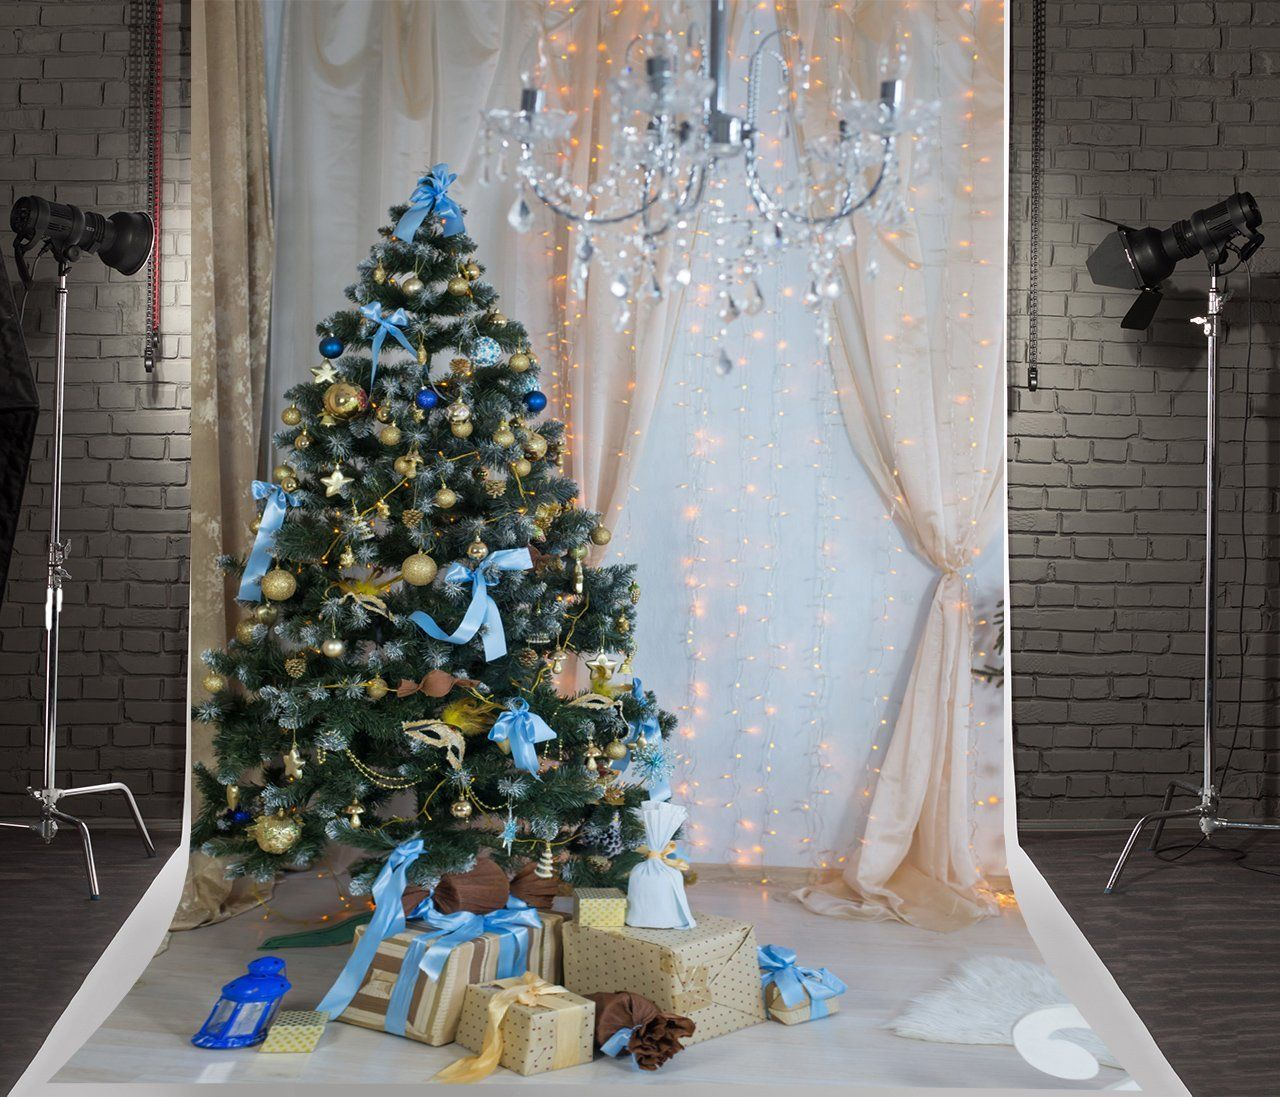 Amazon Com 5x7ft 1 5x2 2m Green Christmas Tree Photography Backdrops Indoor Lighting Background Wit Green Christmas Tree Christmas Tree Photography Backdrops